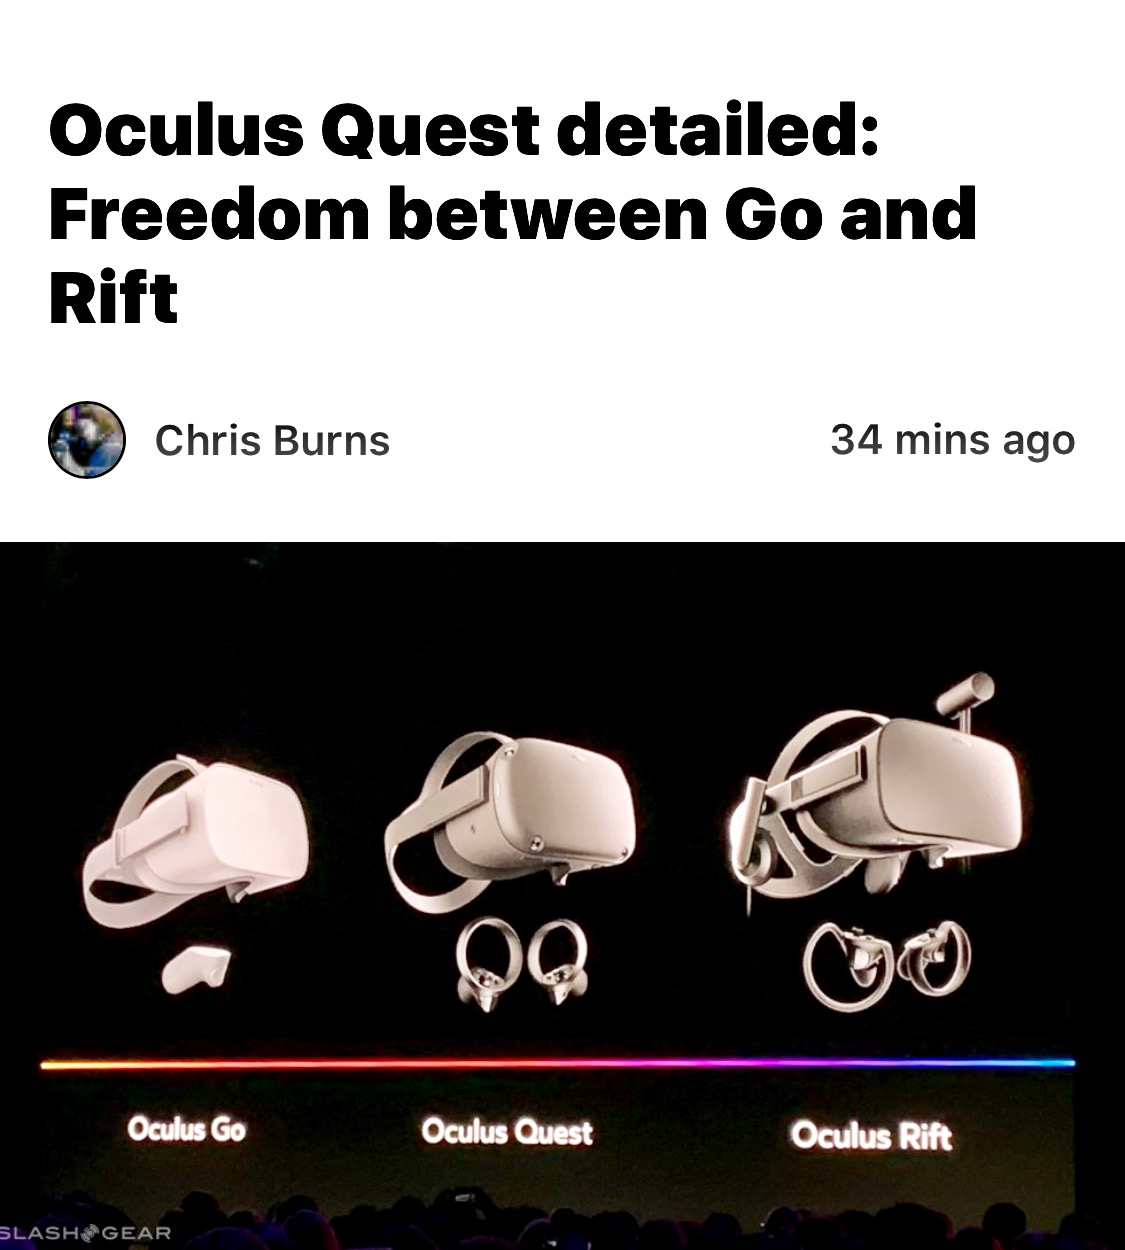 Facebook Announces Oculus Quest VR Headset